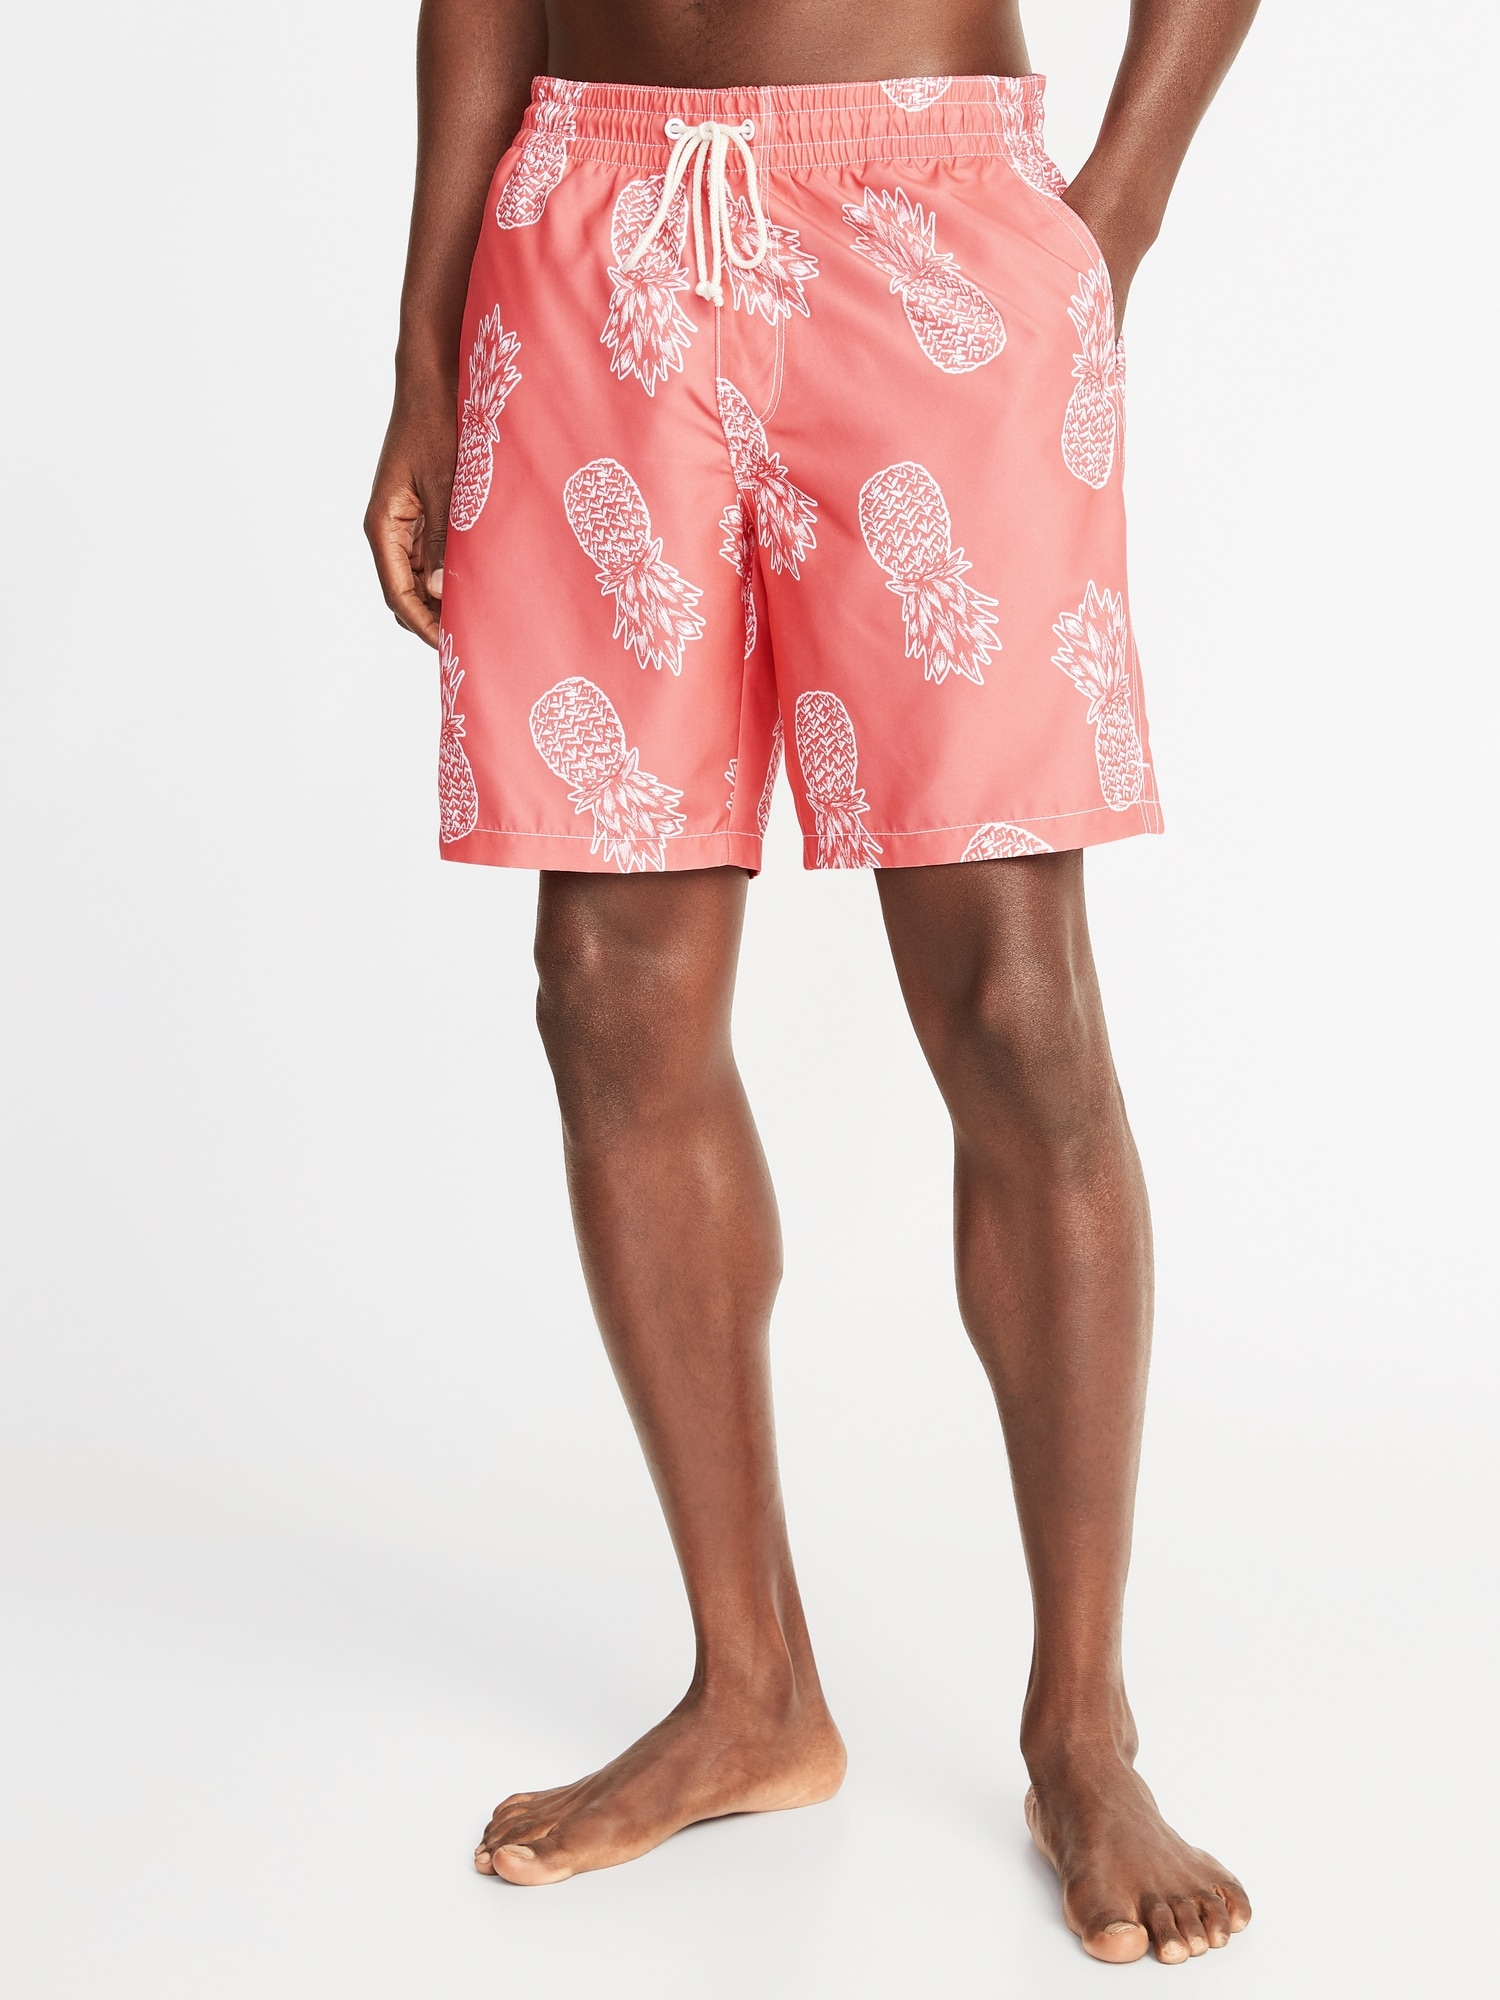 4c92bfb9f1 Printed Swim Trunks for Men - 8-inch inseam | Old Navy